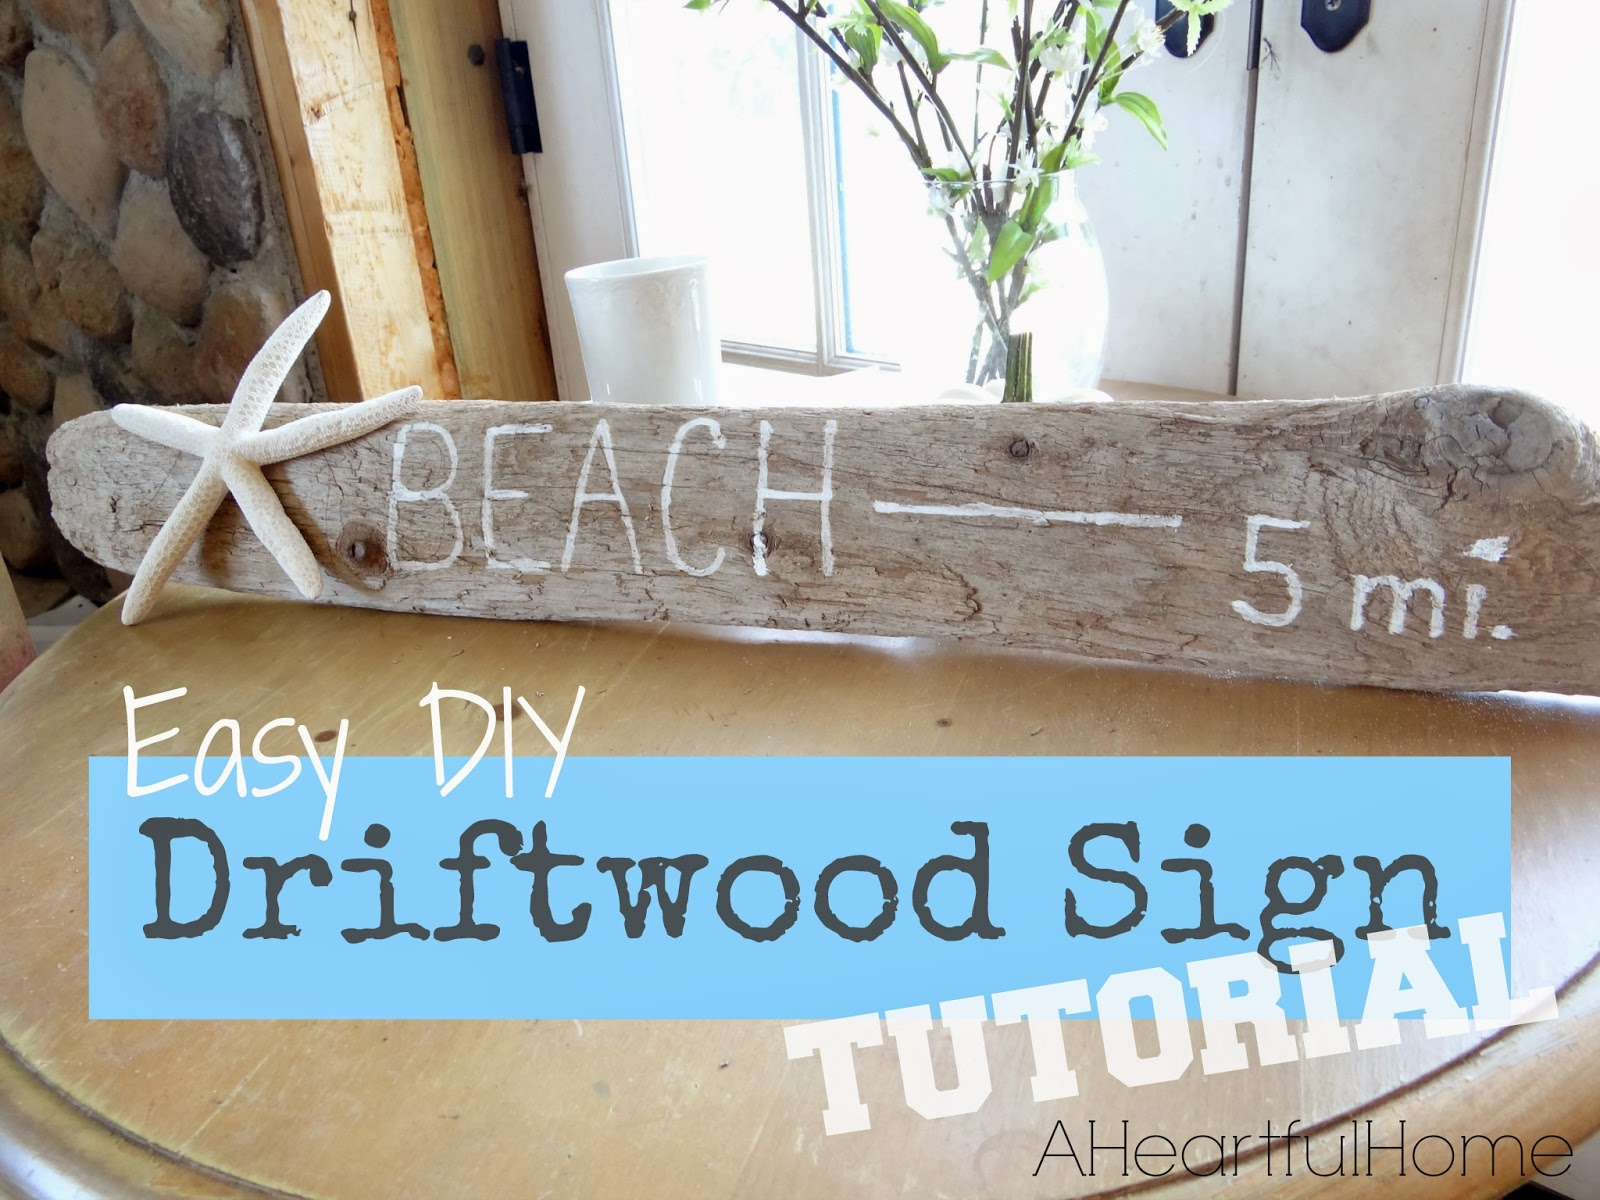 a heartful home 31 days of coastal style easy diy